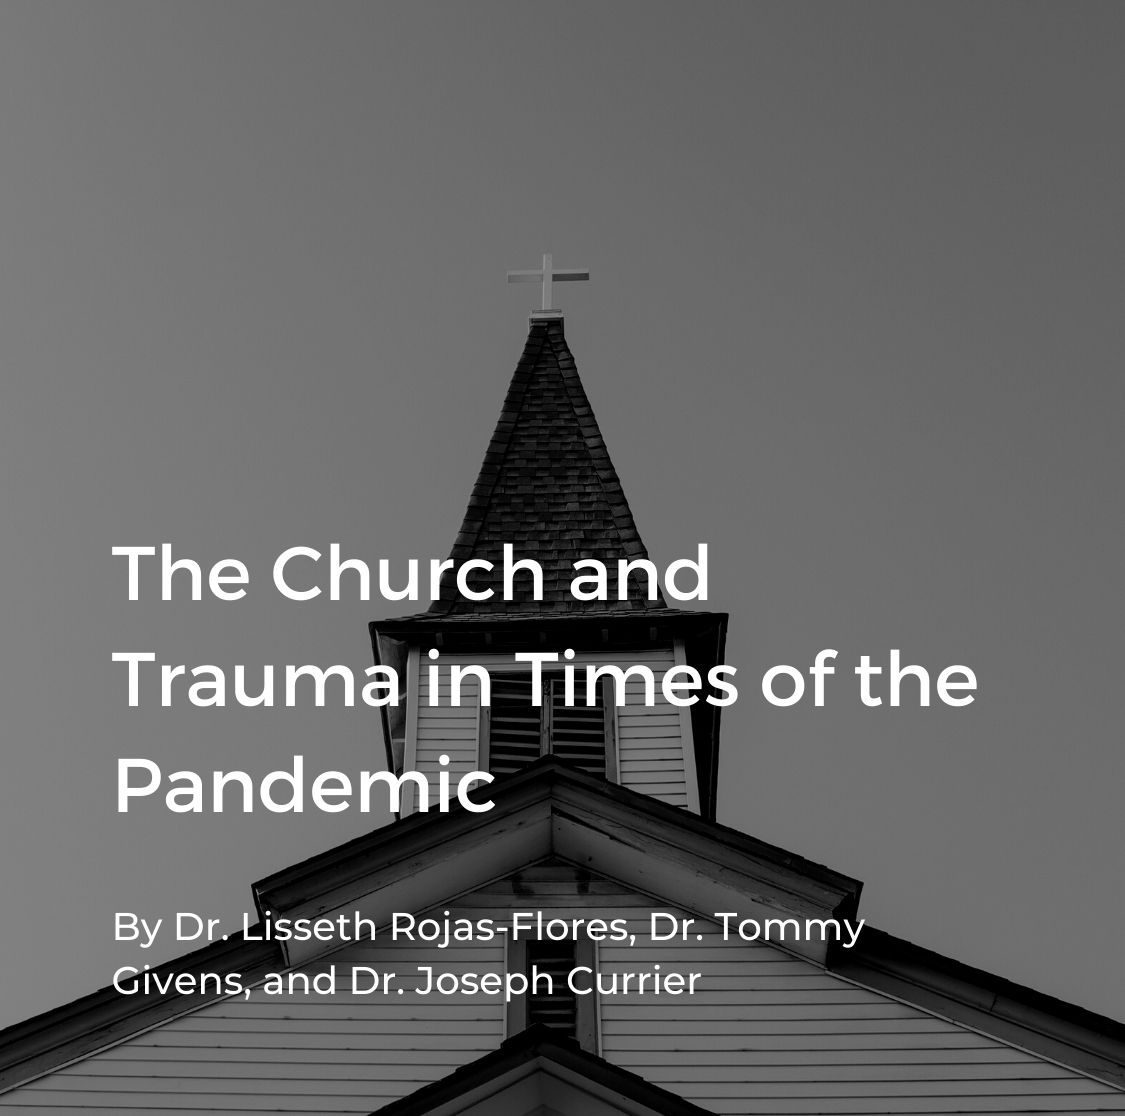 Cover for English webinar on the church and trauma during COVID-19